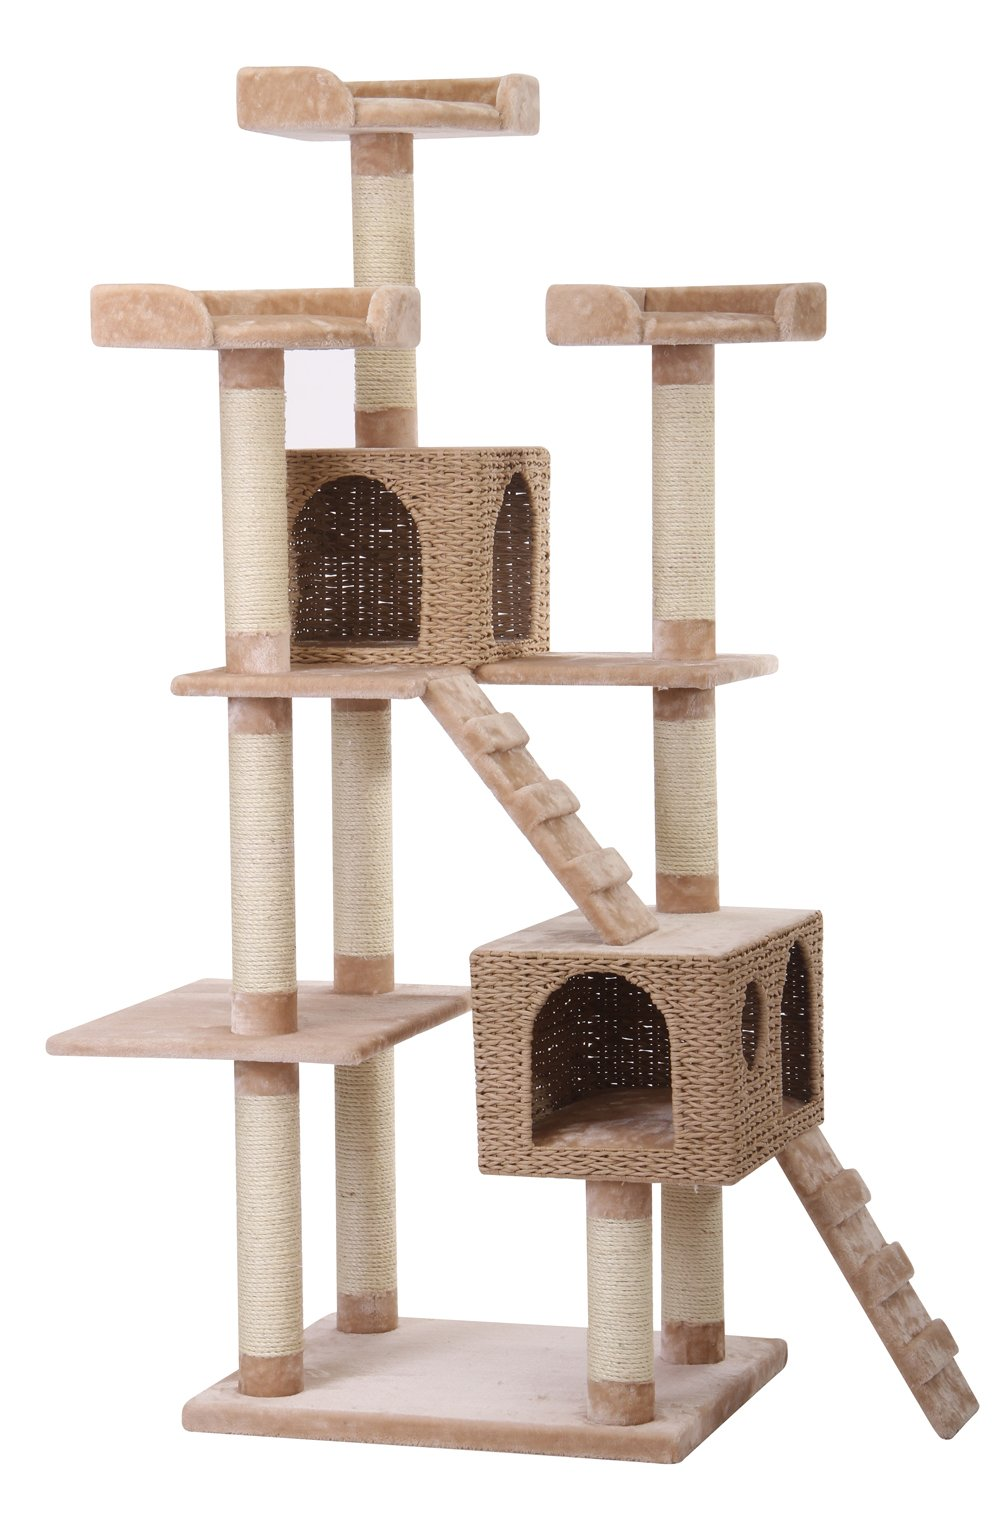 Towers - PetPals  Multi-Level Paper Rope, Fleece and Sisal Towers